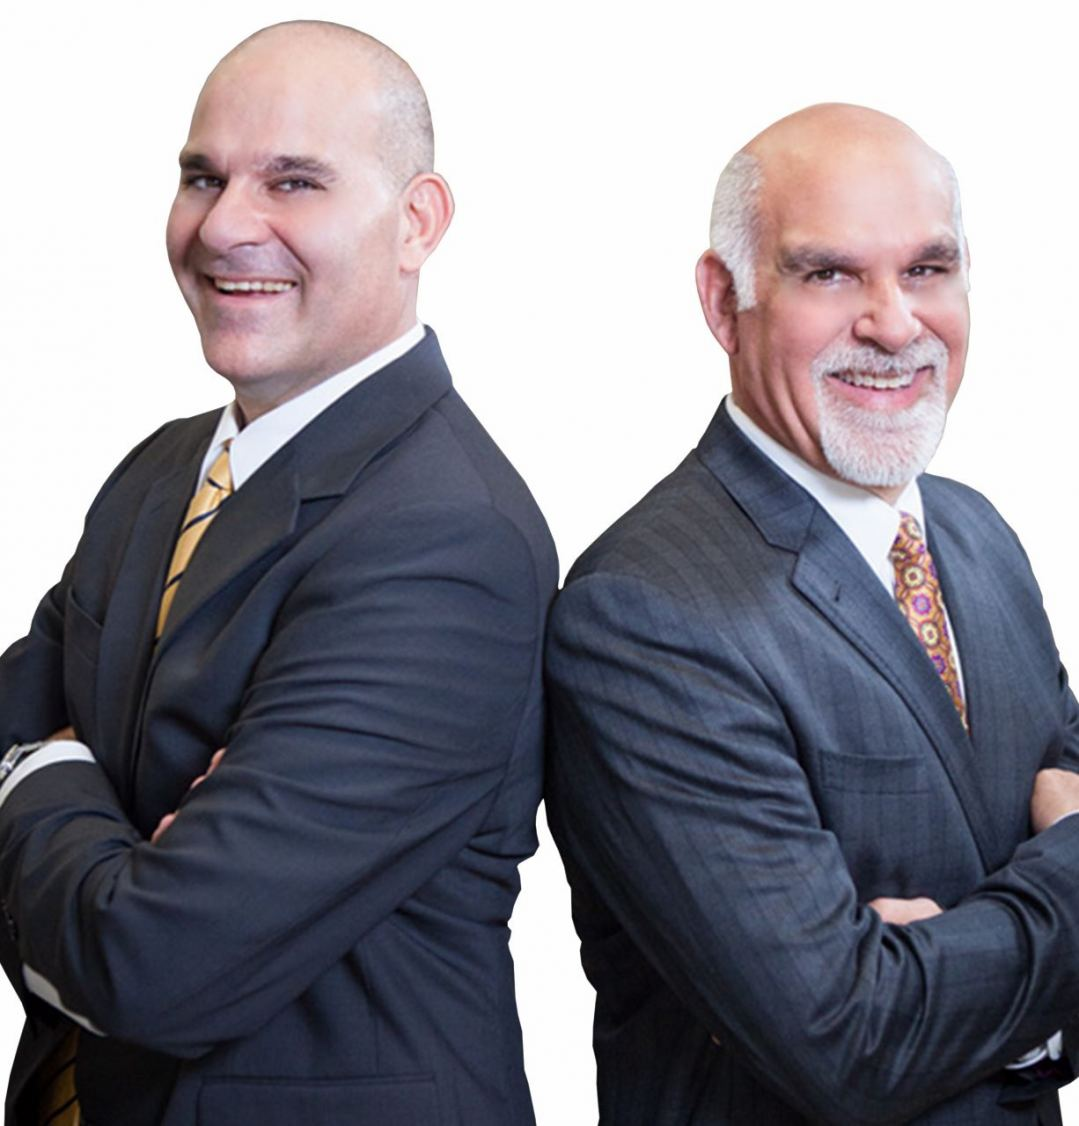 Brothers Mark and Neil Gellman, St. Louis natives who lead the Gellman Team.